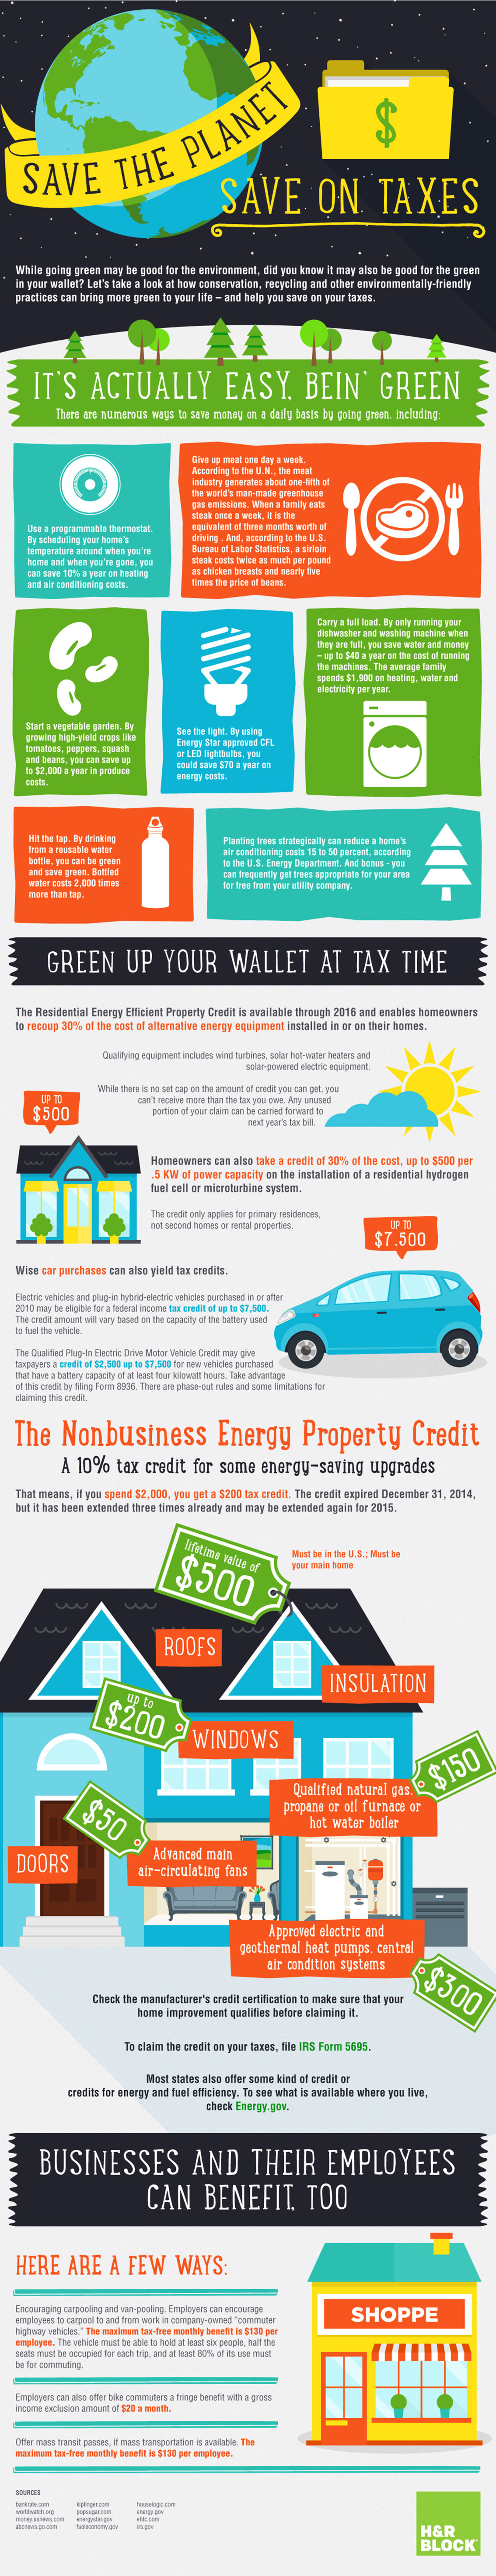 Earth Day - Save on Tax by Saving The Planet Infographic